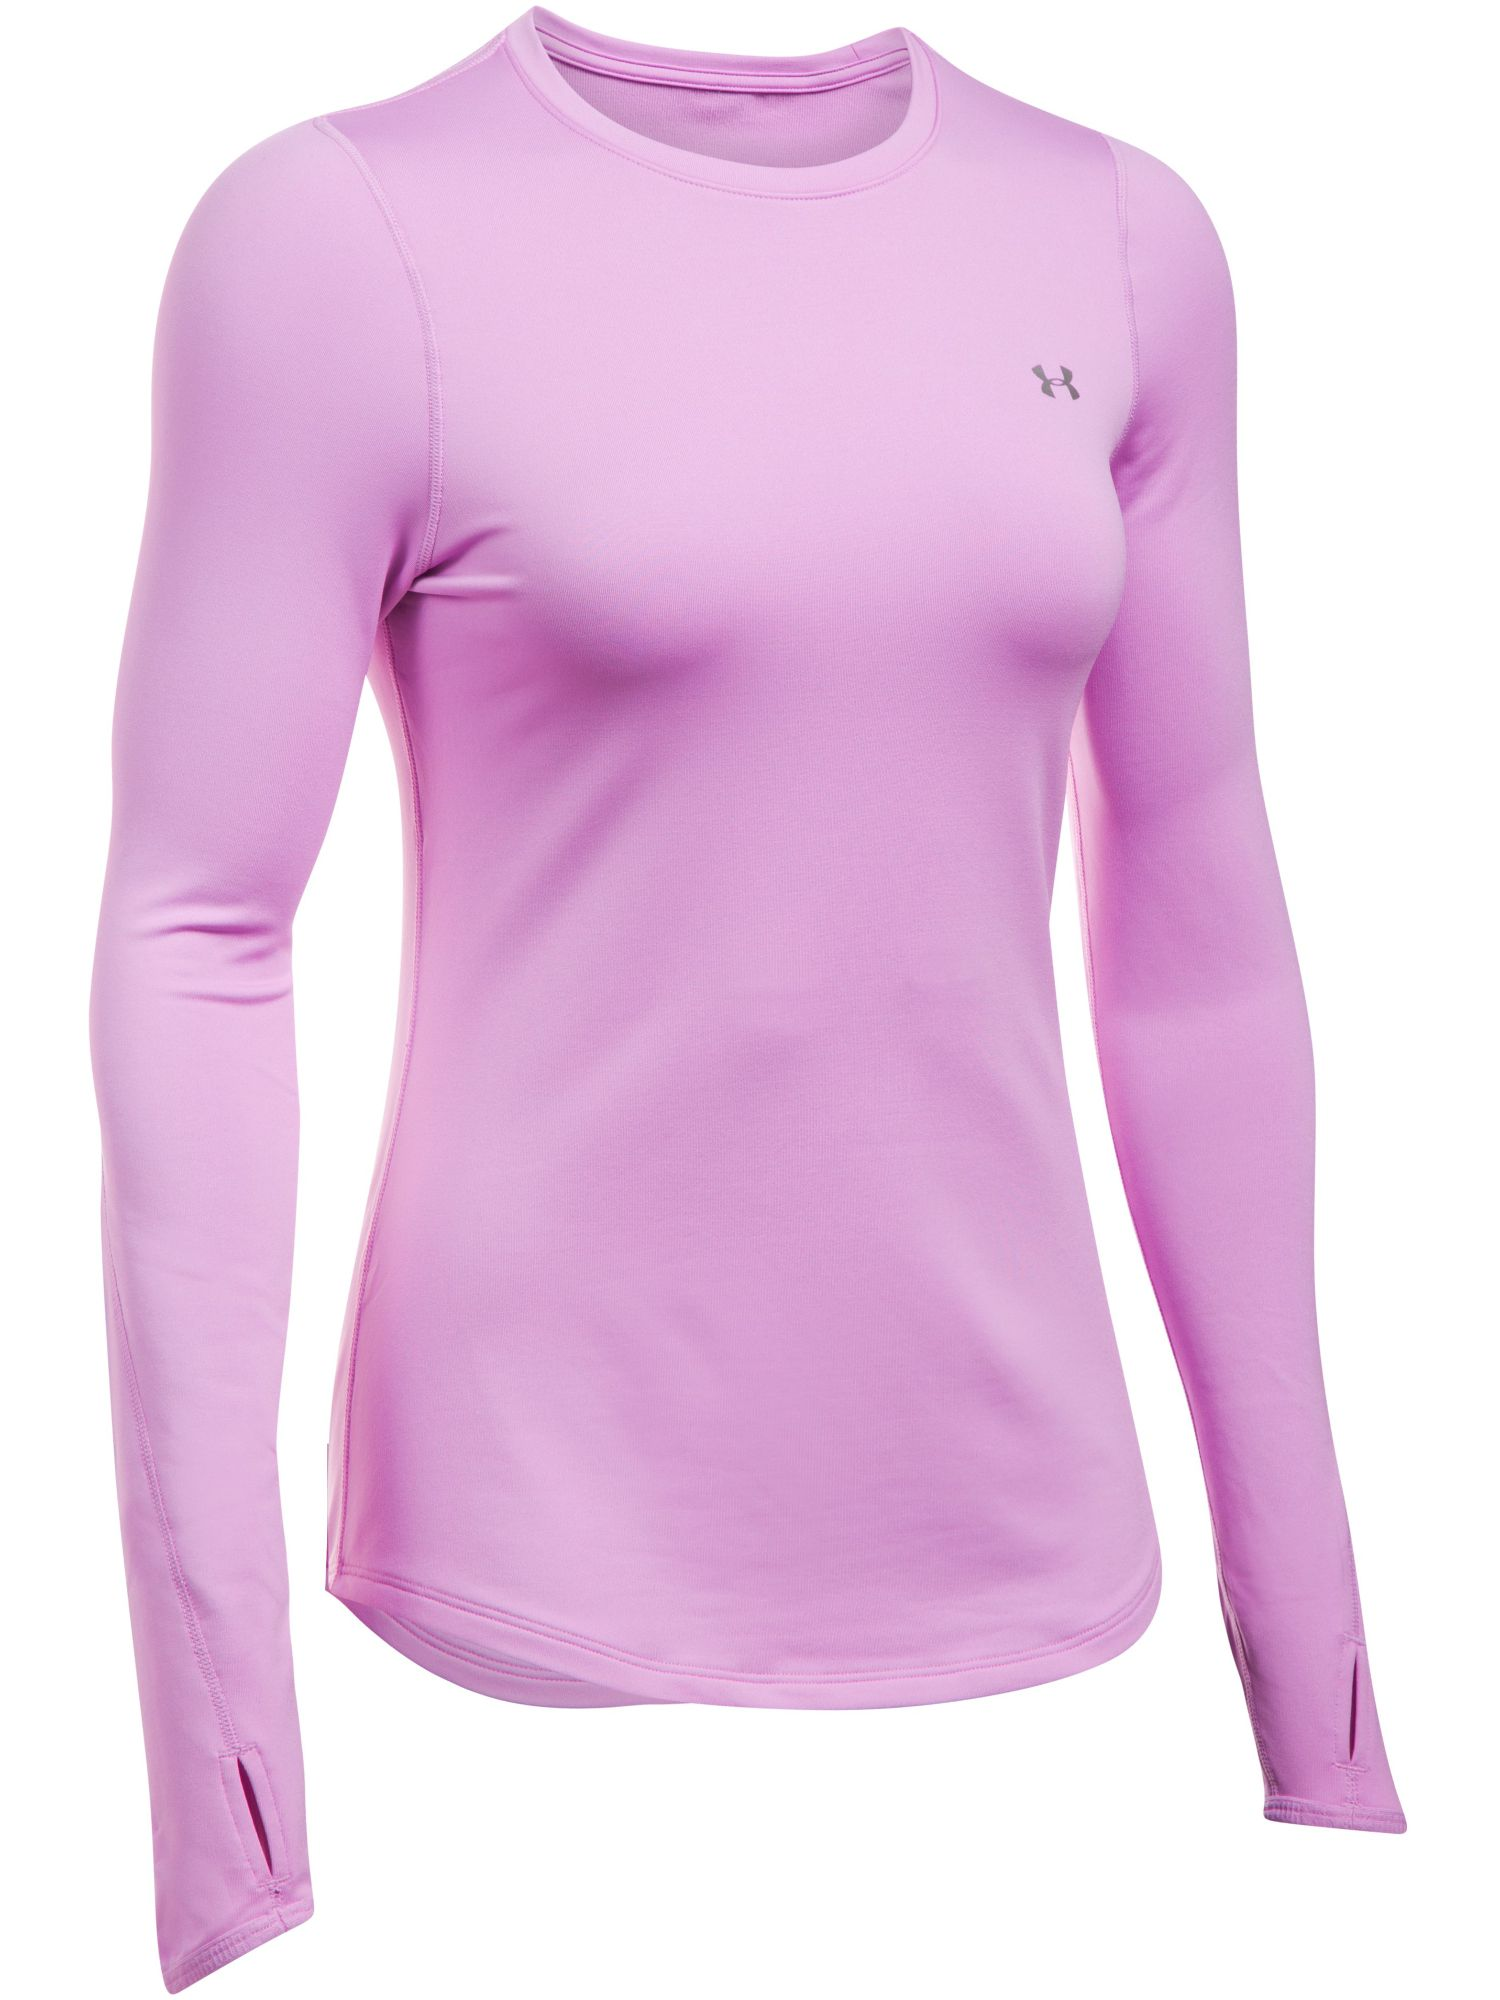 Under Armour Coldgear Armour Crew, Pink